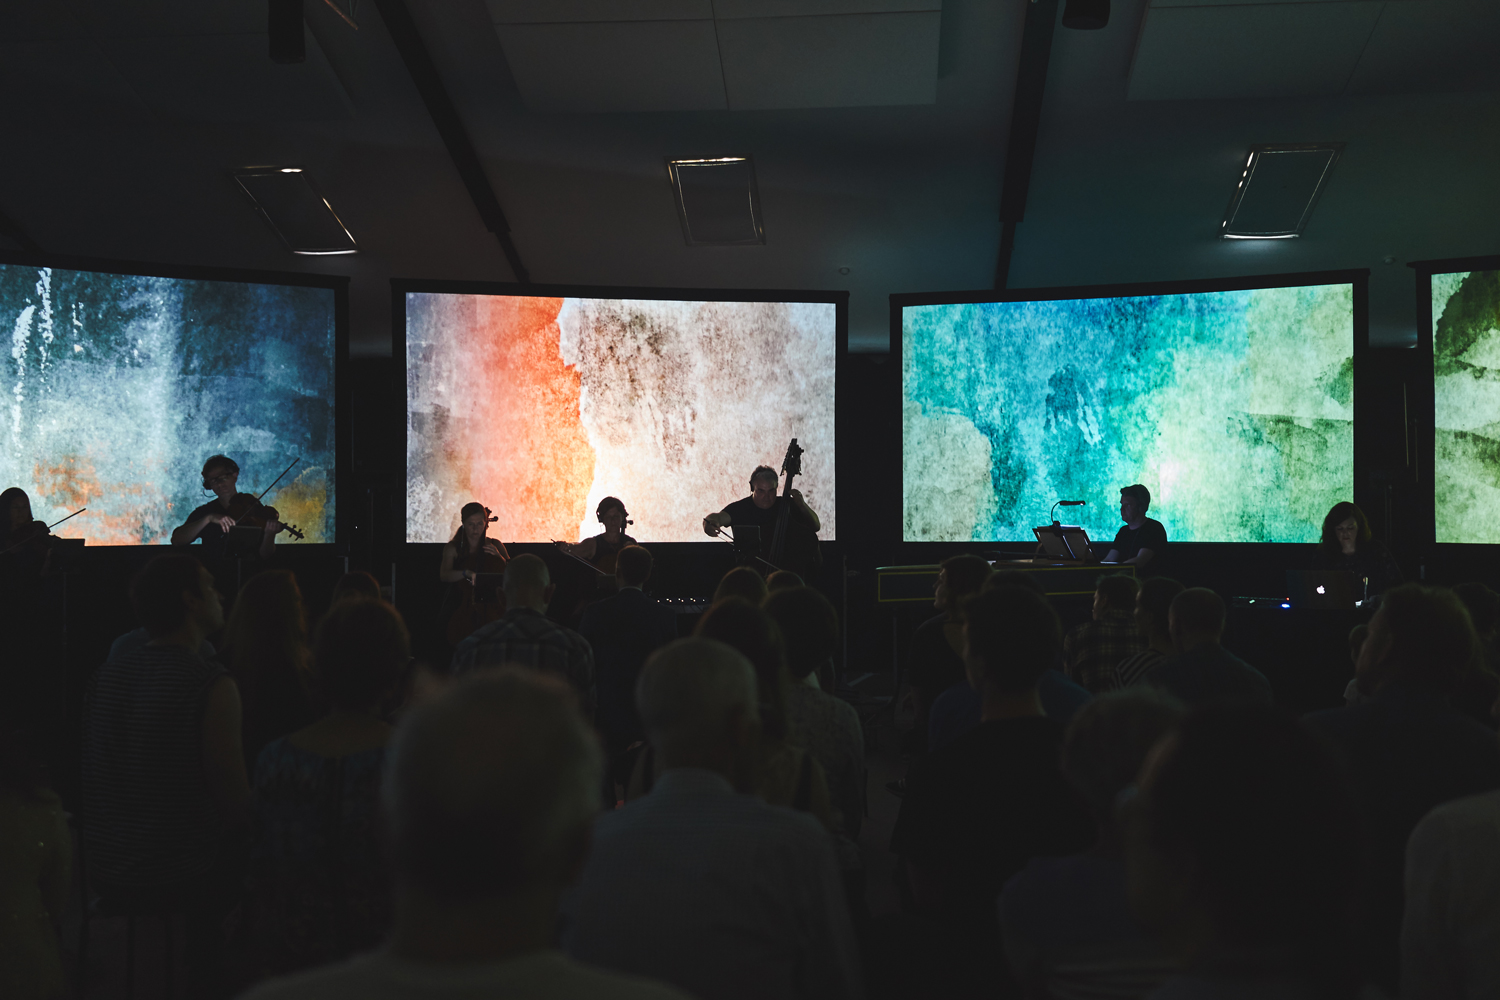 Anno---Performance-with-audience-and-bright-watercolour-screens.jpg